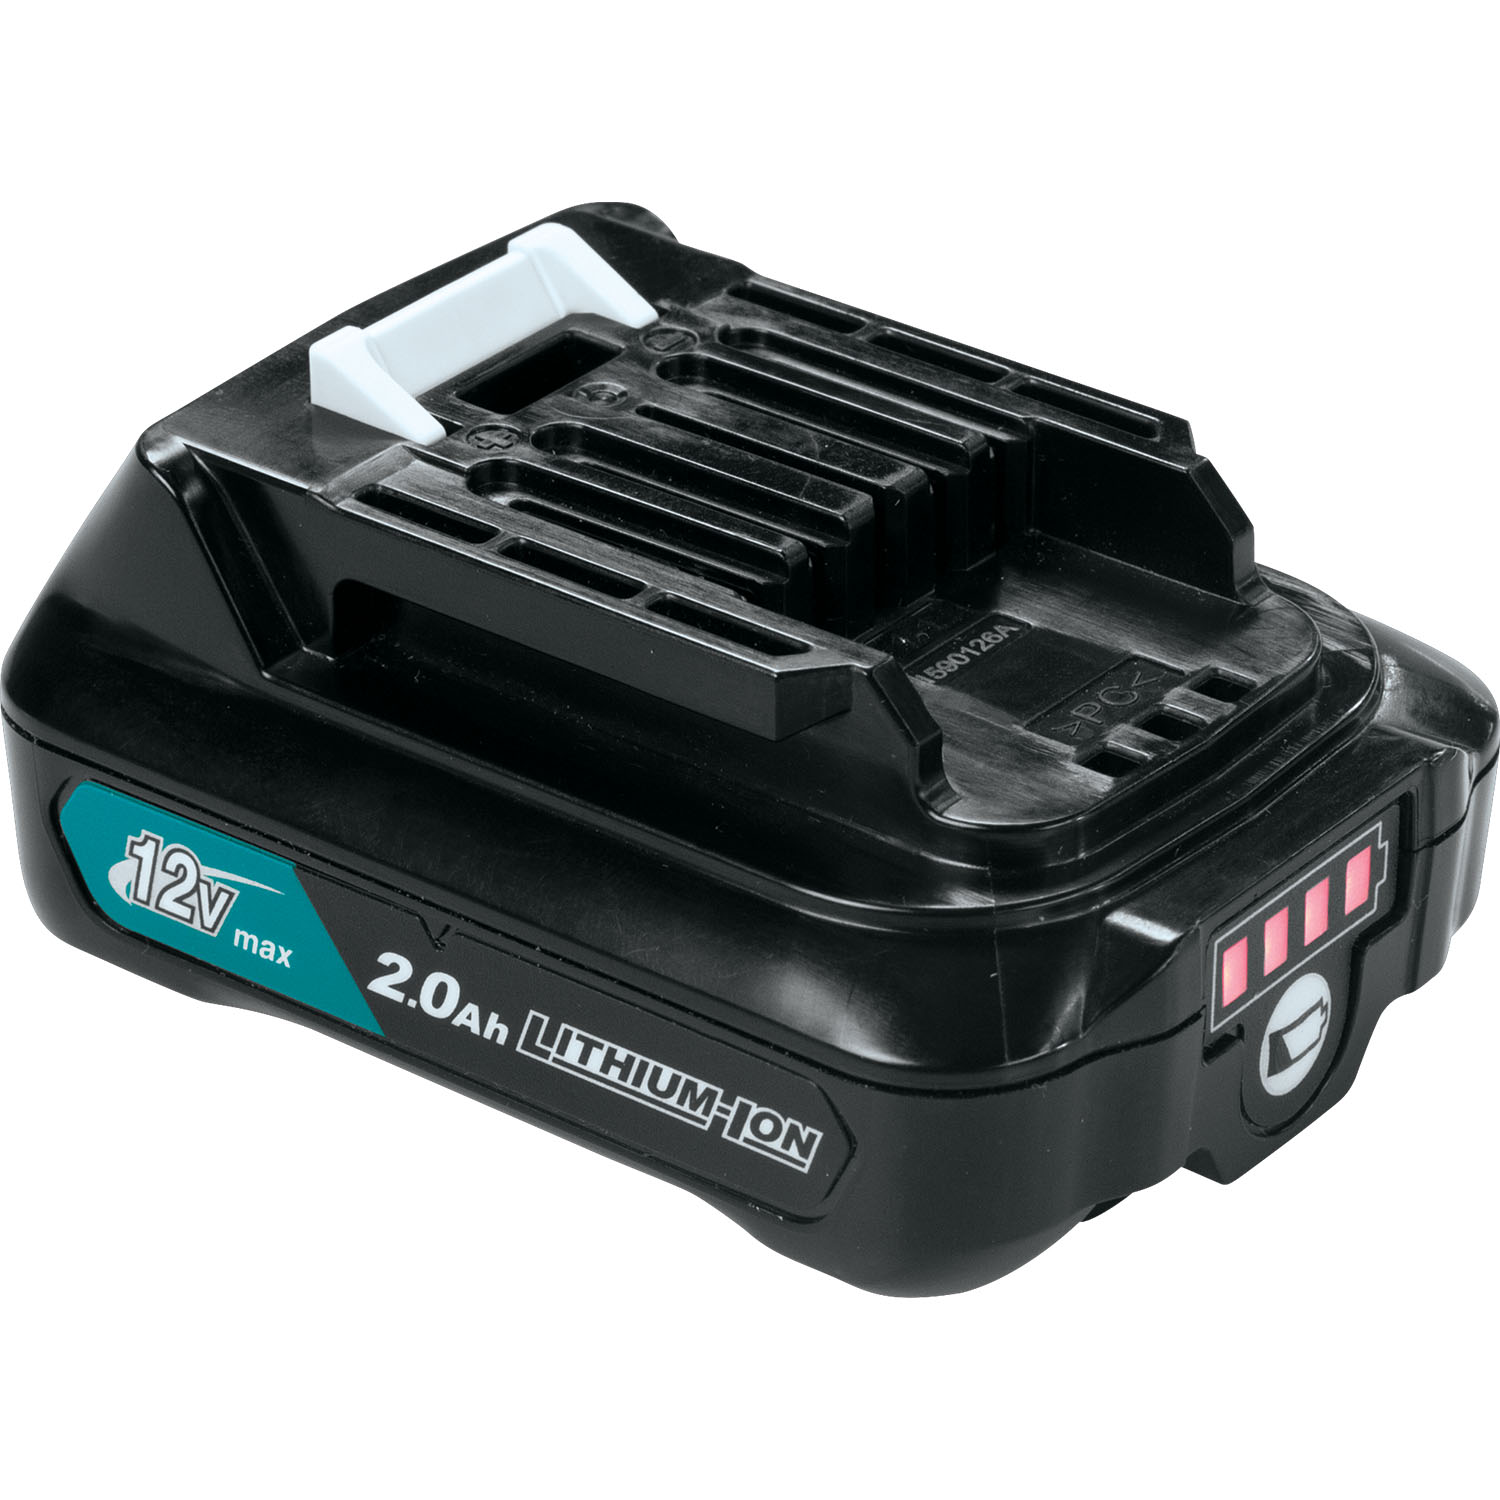 makita 12v max cxt lithium ion 2 0ah battery. Black Bedroom Furniture Sets. Home Design Ideas